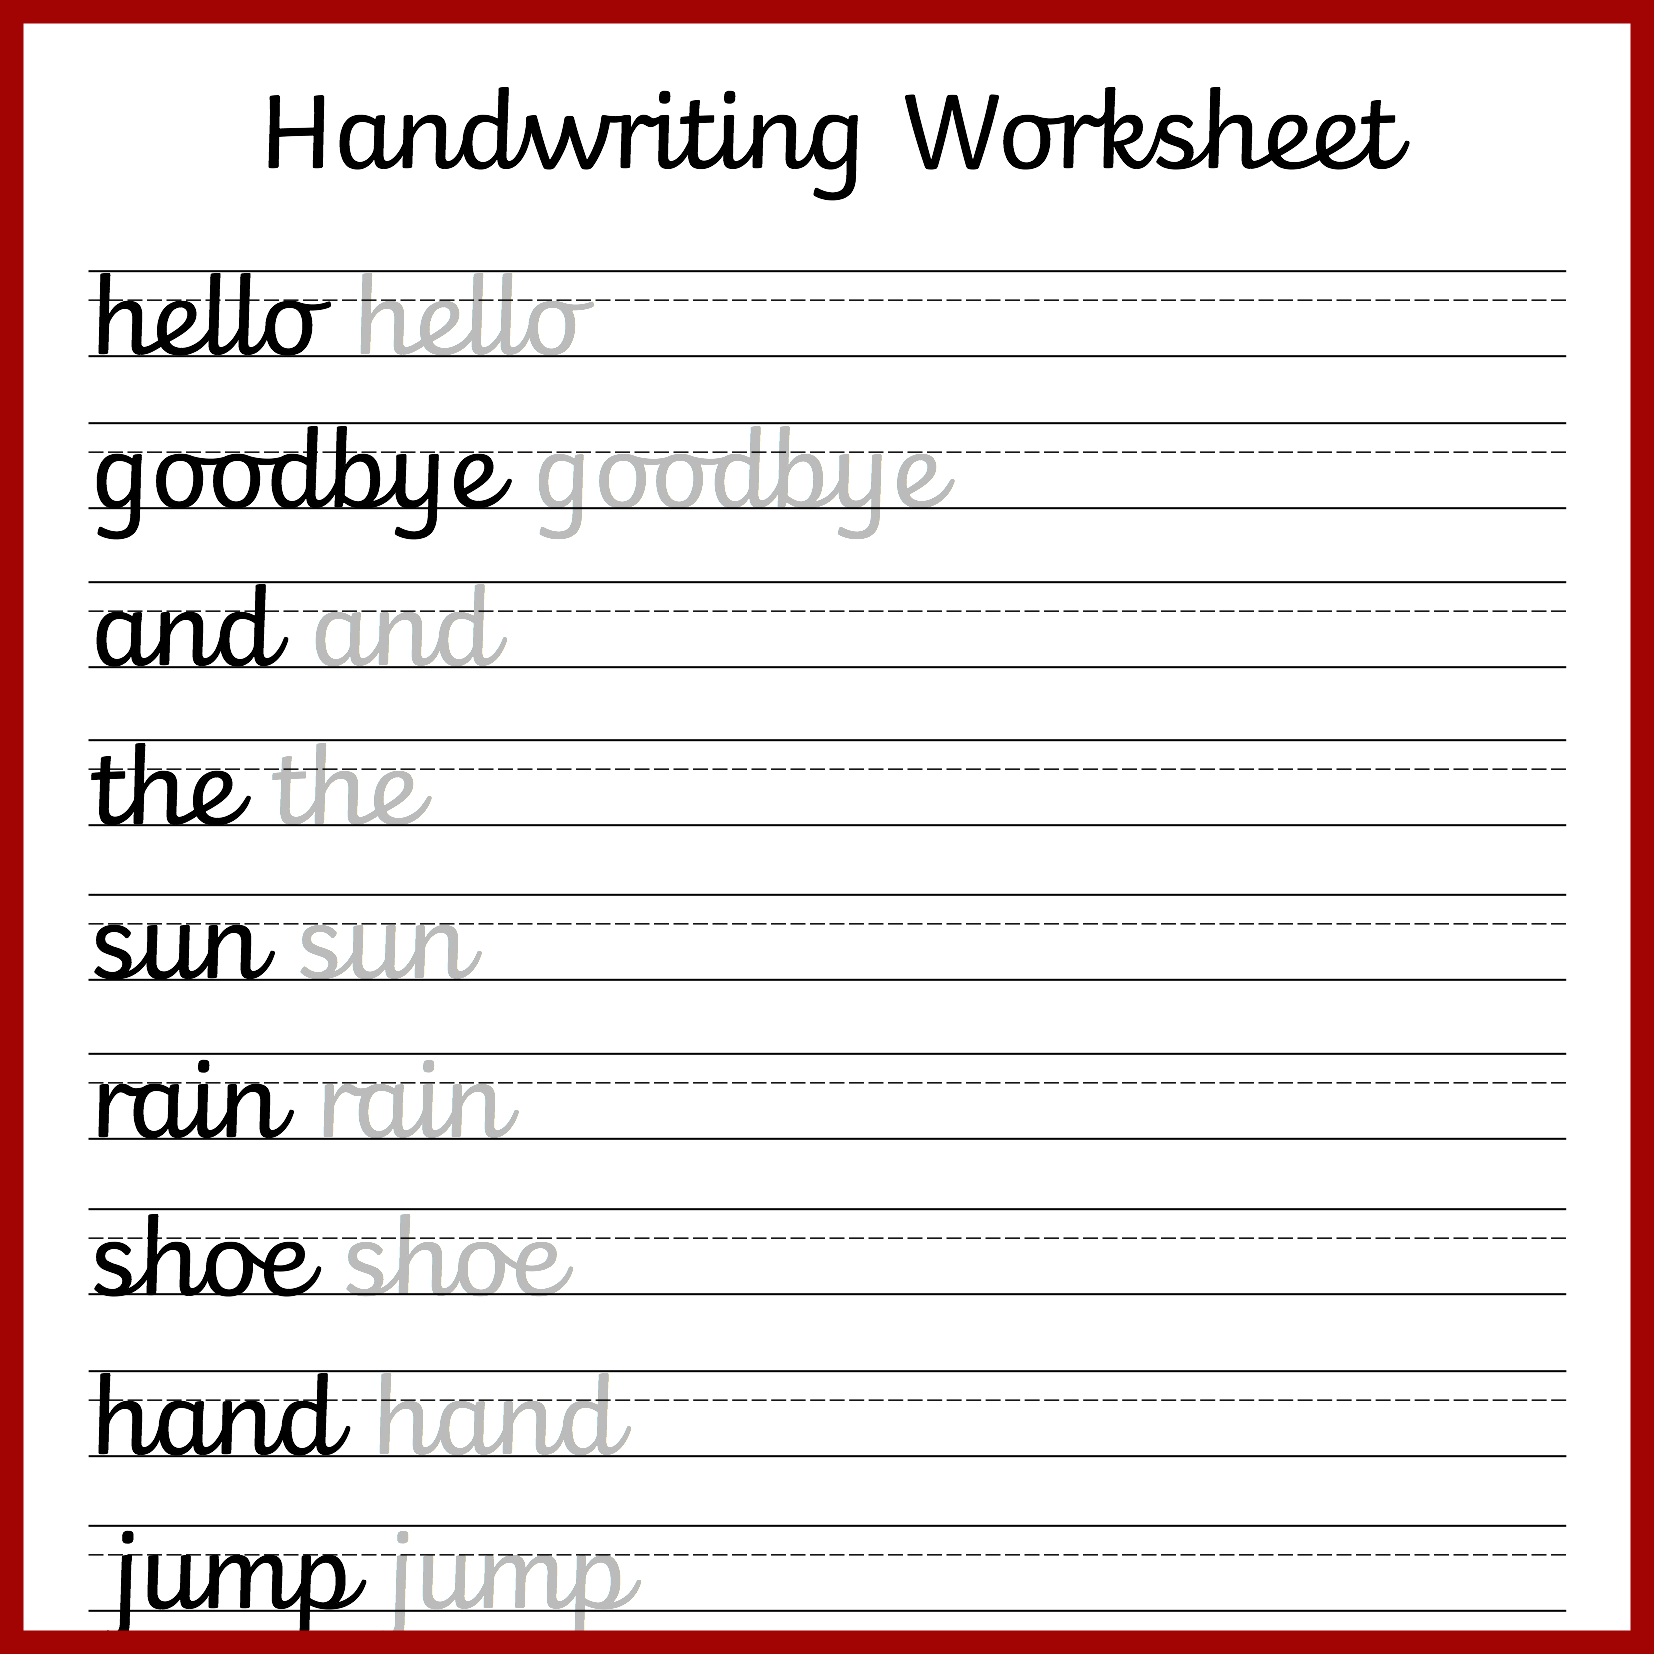 worksheet Cursive Writing Worksheets Free cursive handwriting worksheets free printable mama geek printable